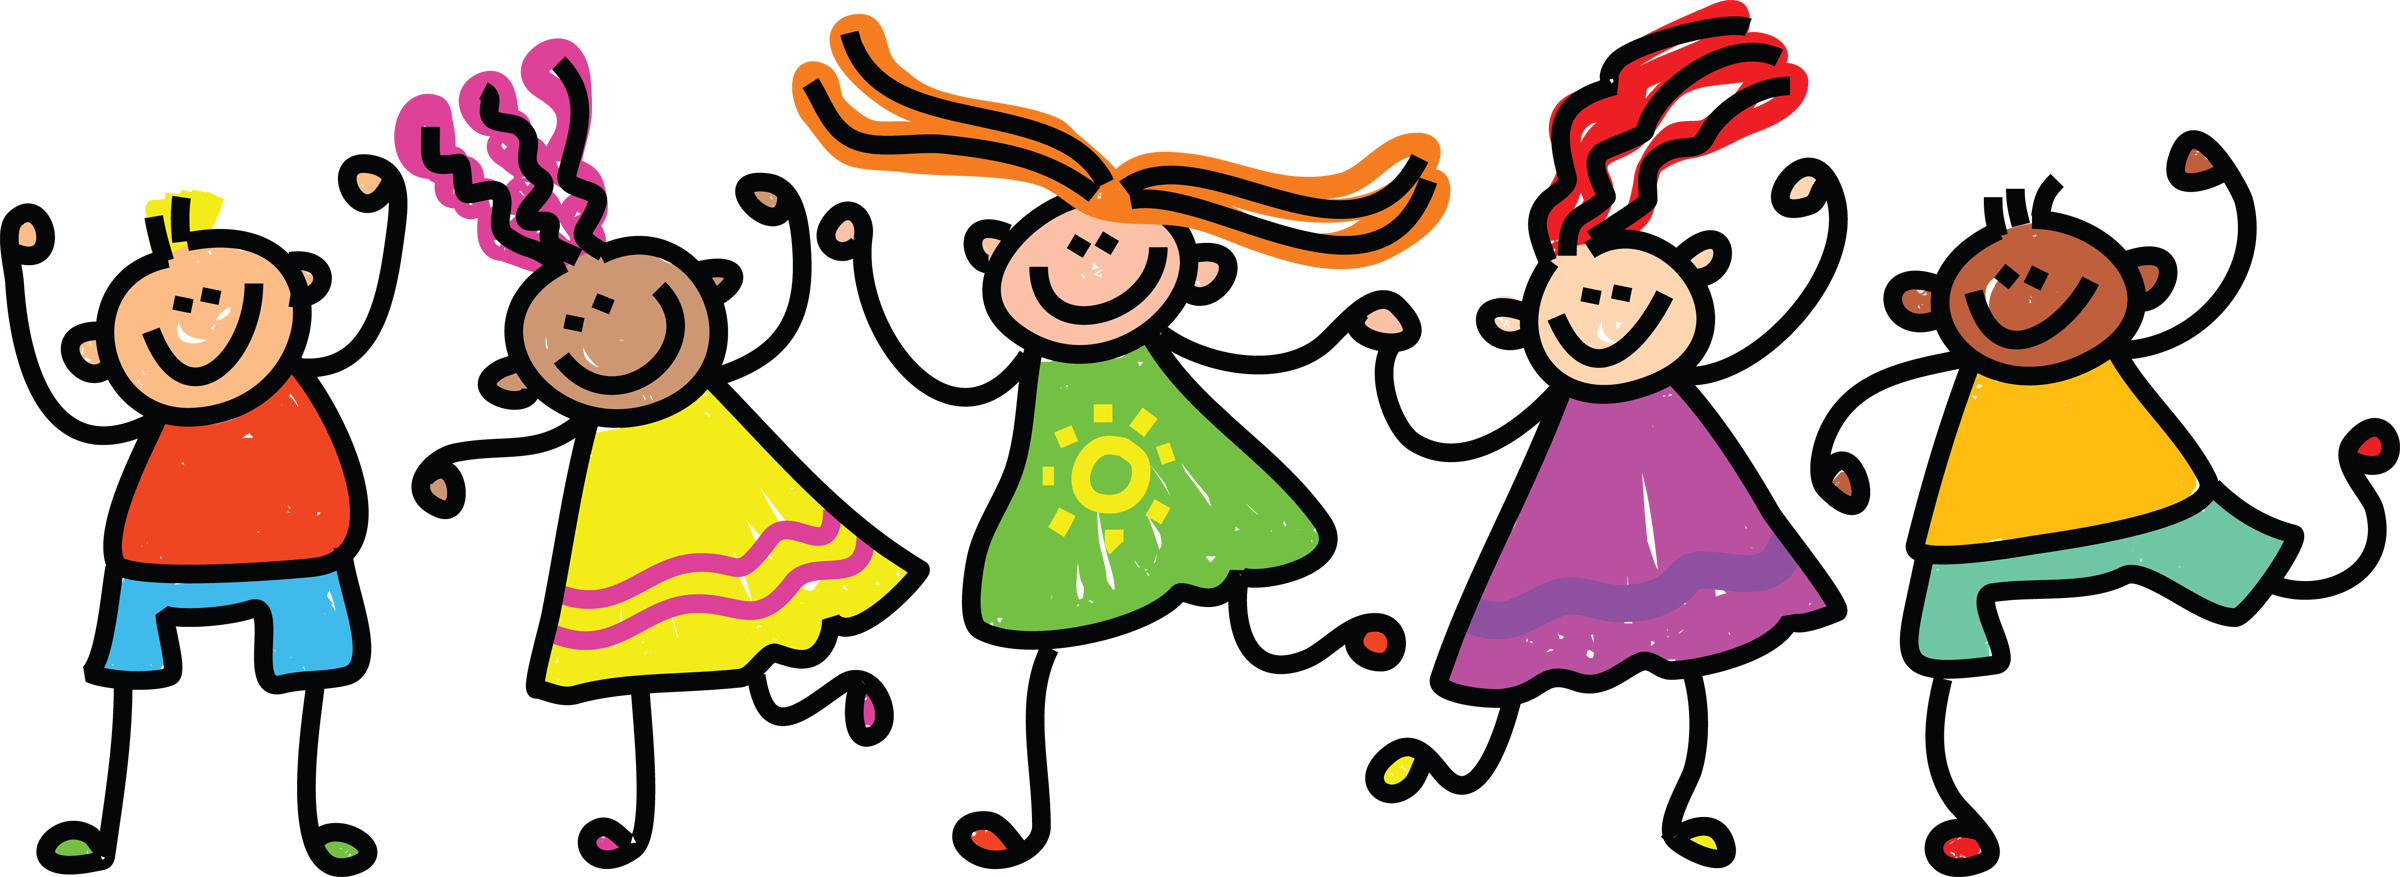 Children playing kids playing summer clipart free images